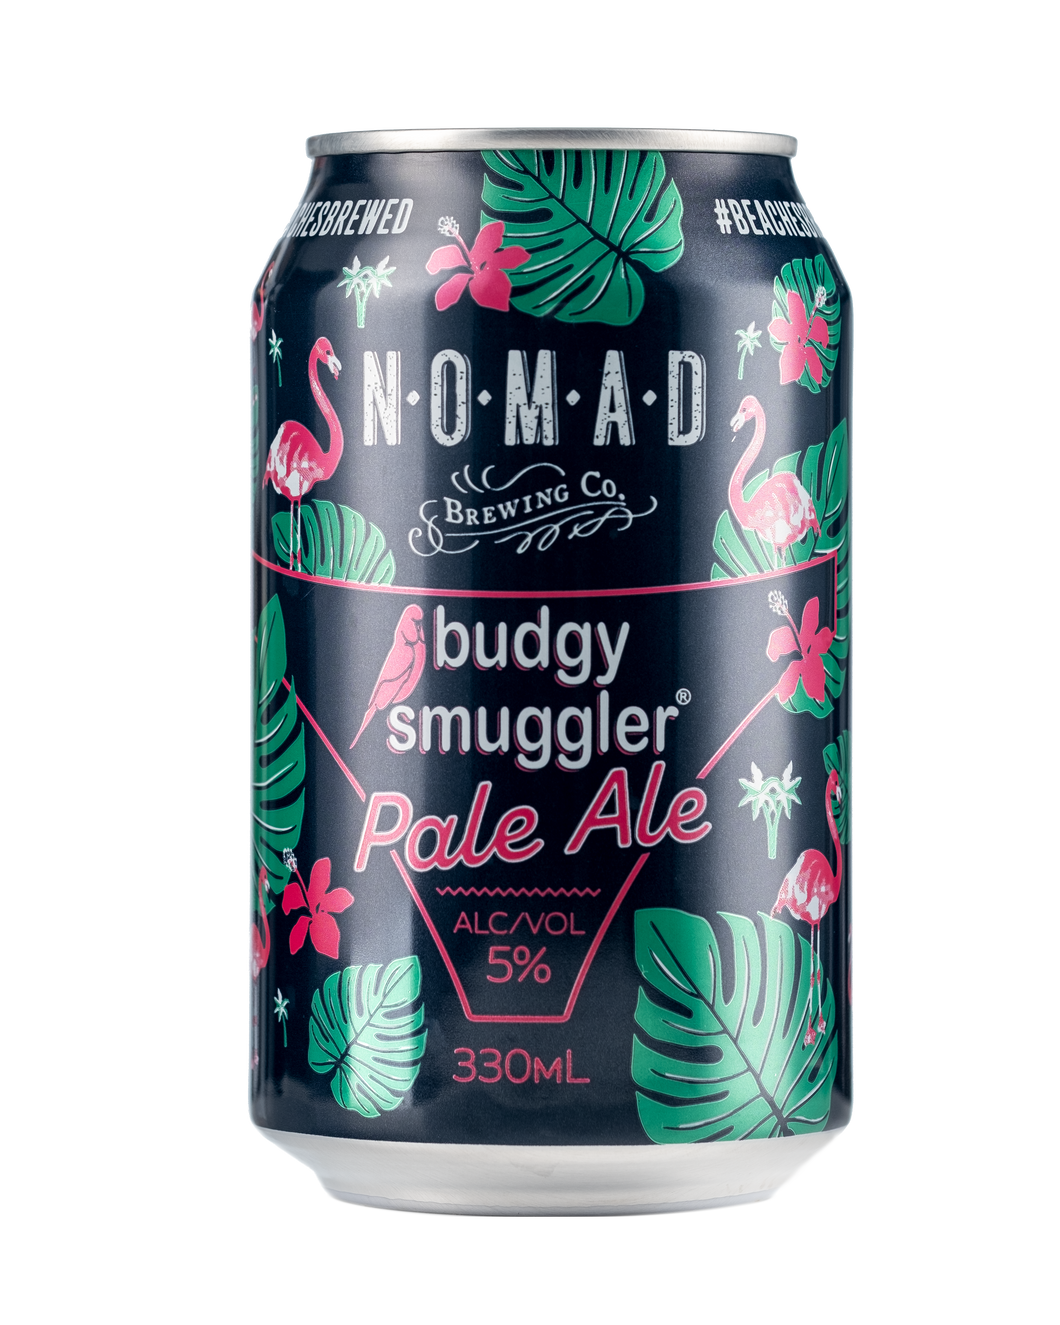 Nomad - Budgy Smuggler Pale Ale  - 330ml Can - 5% - Bundle